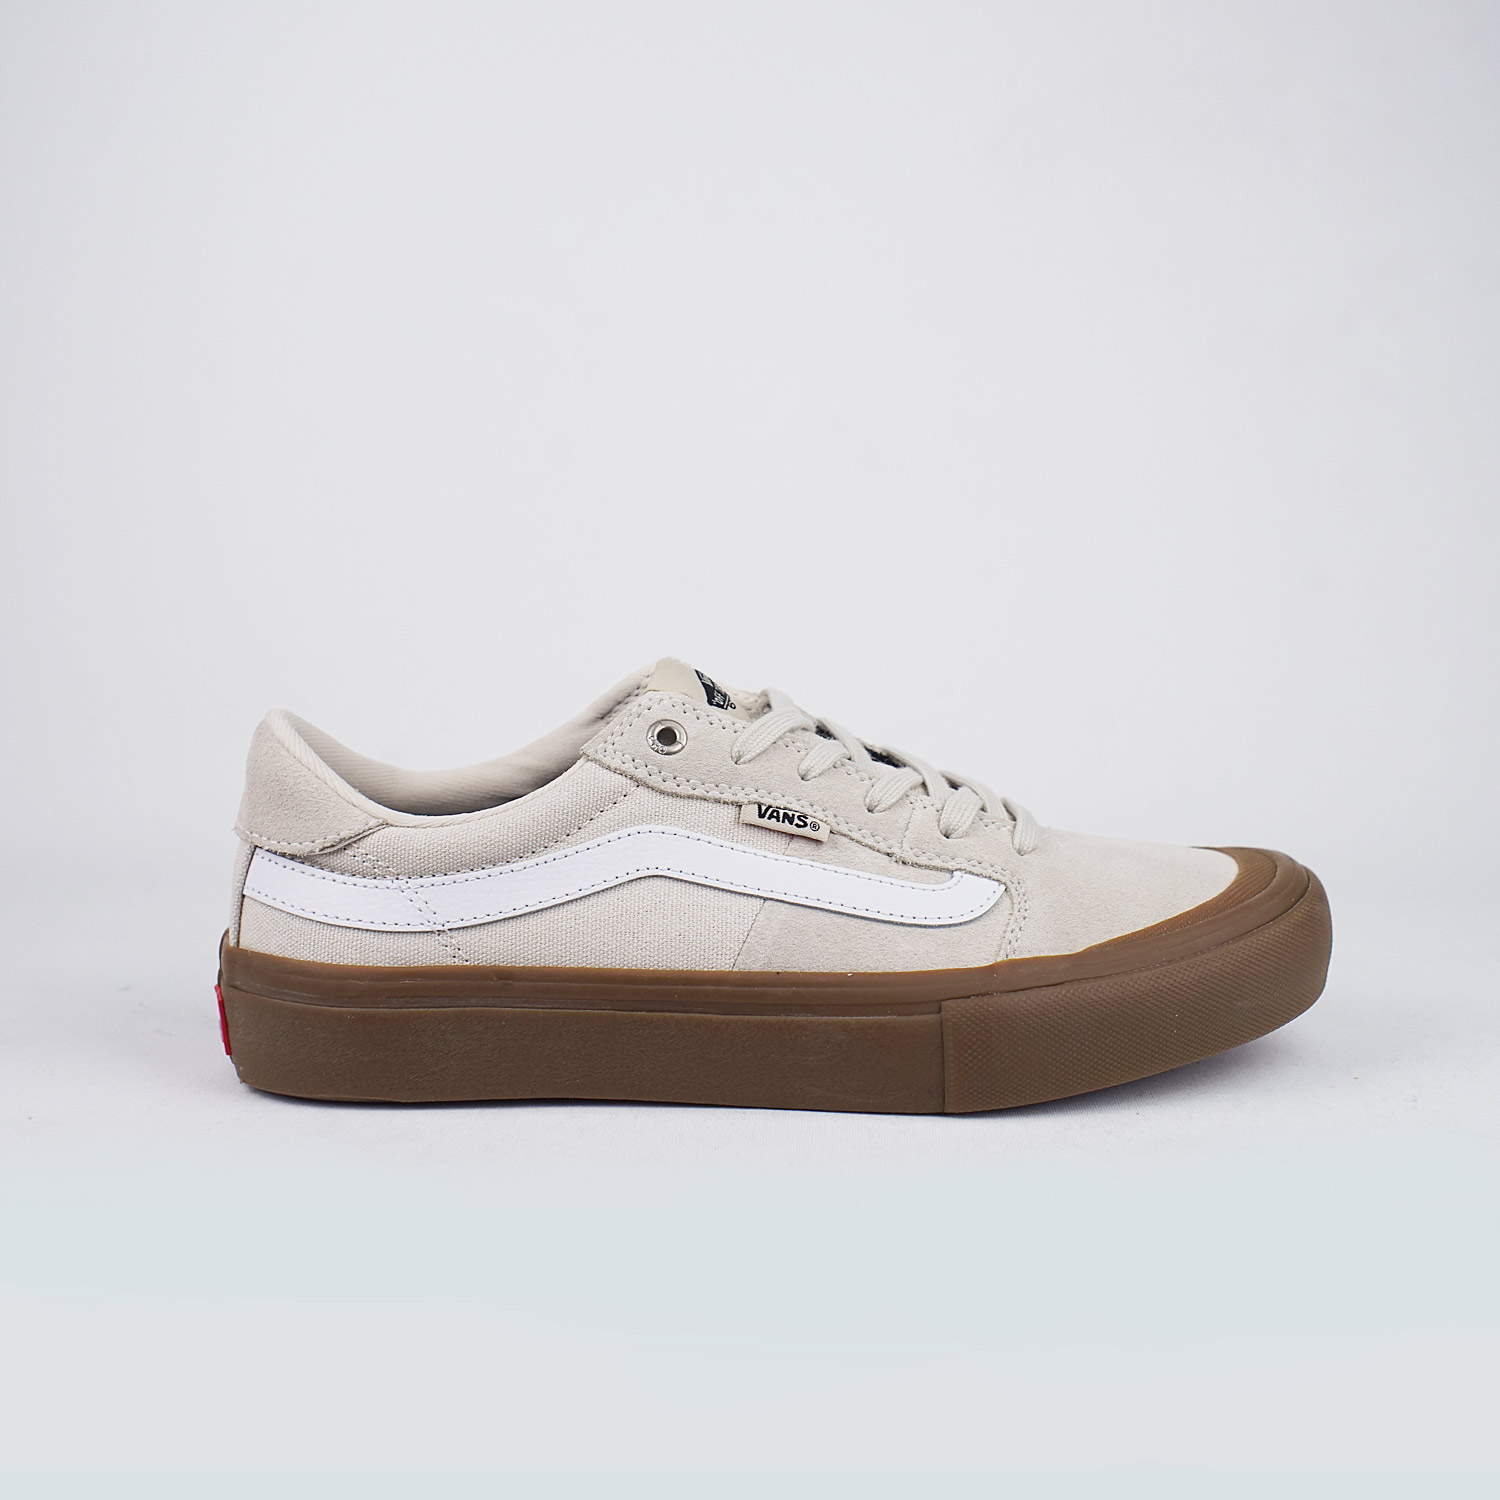 Awesome Vans Shoes For Sale